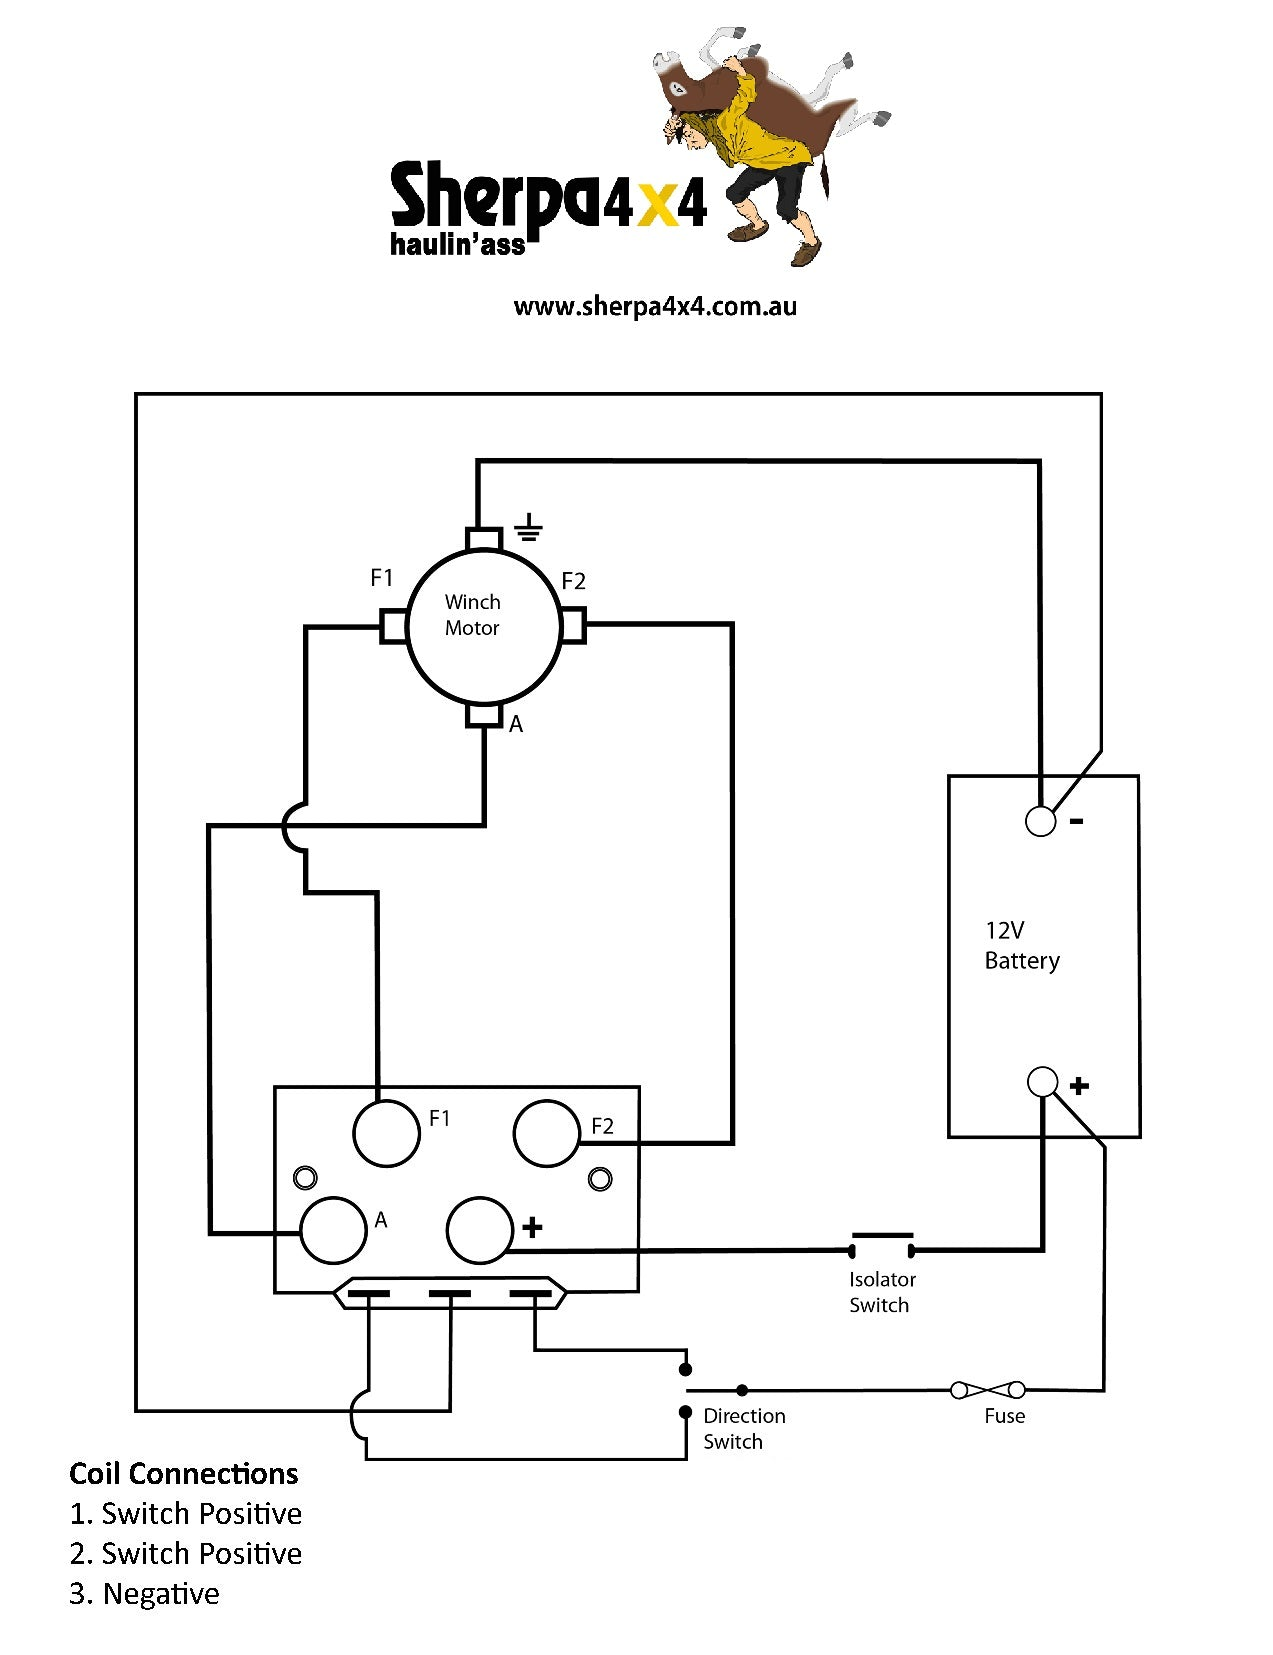 Sherpa_4x4_Winch_Wiring_Diagram?12240005484949772751 albright winch solenoid dc88p scintex australia winch solenoid wiring diagram at eliteediting.co